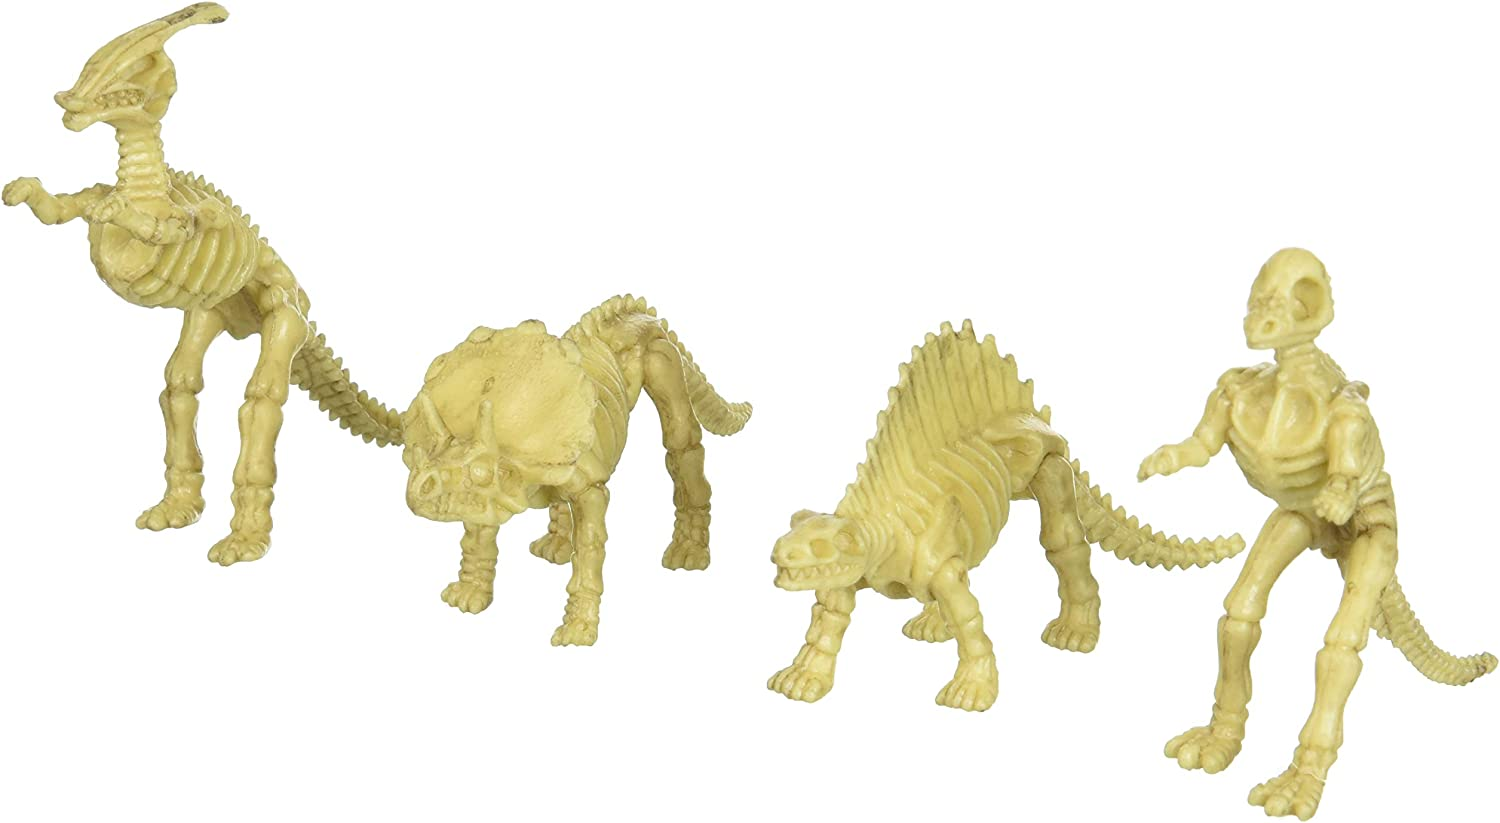 US Toy - Assorted Dinosaur Skeleton Toy Figures, Made of Plastic, (2-Pack of 12): Amazon.es: Juguetes y juegos